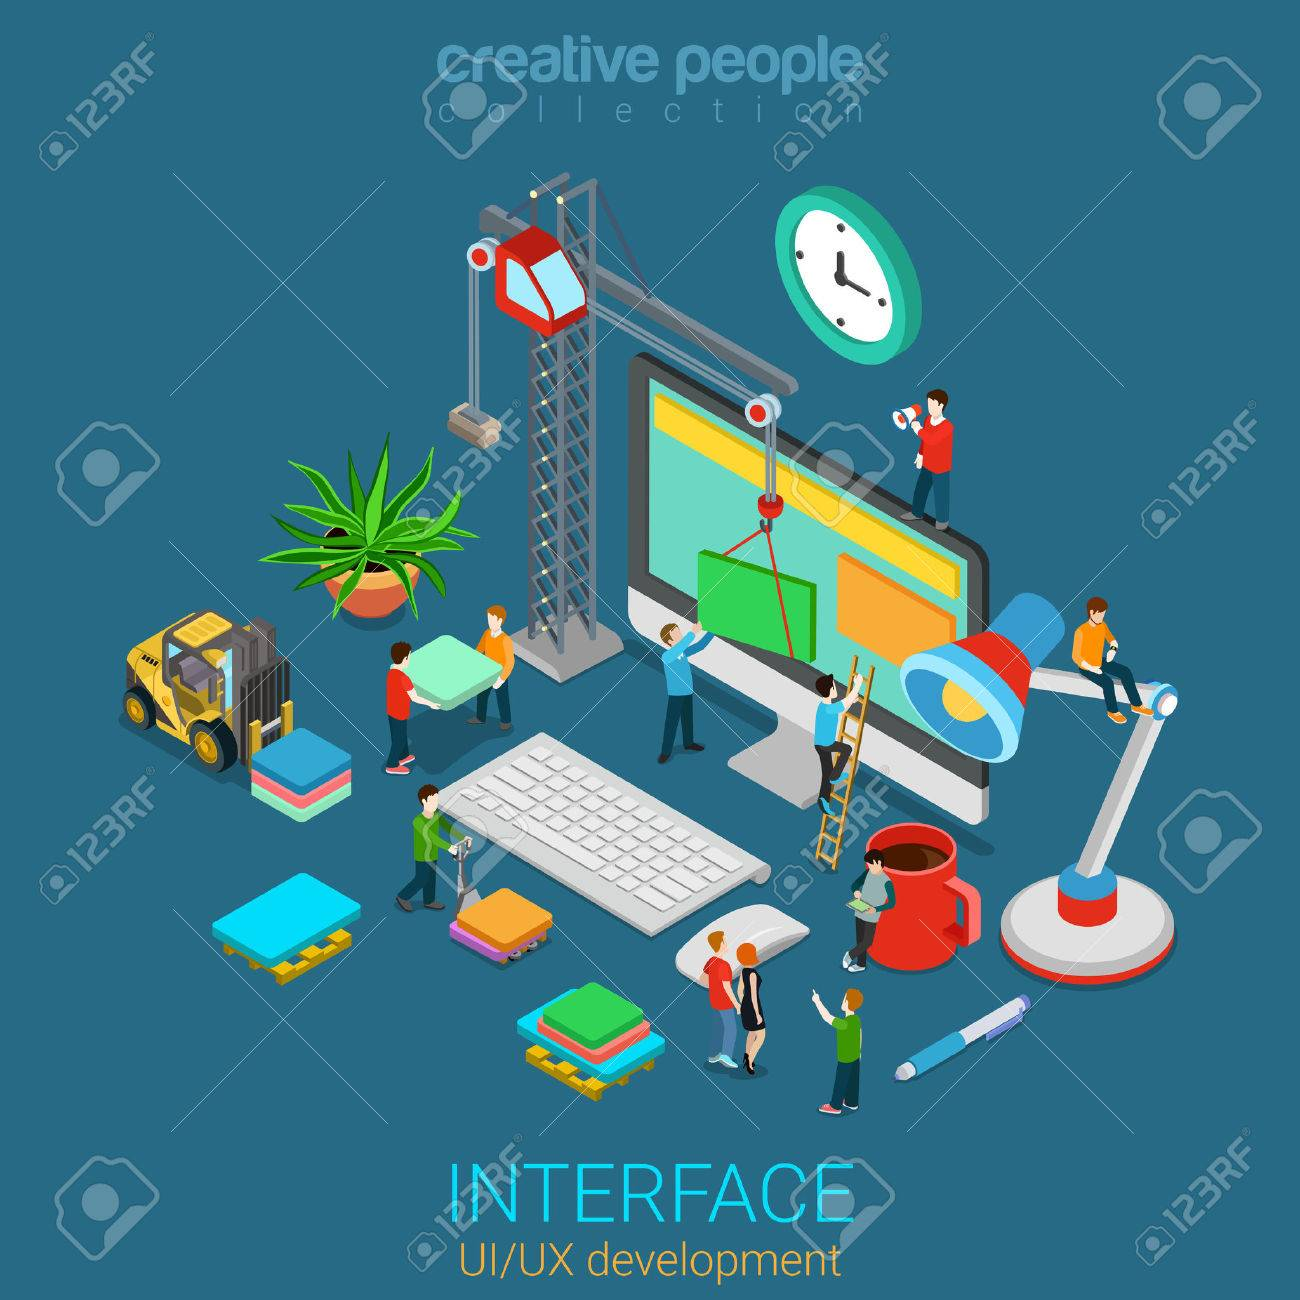 Flat 3d isometric mobile UI/UX GUI design web infographic concept vector. Crane people creating interface on computer. User interface experience usability mockup wireframe software development concept - 56931667